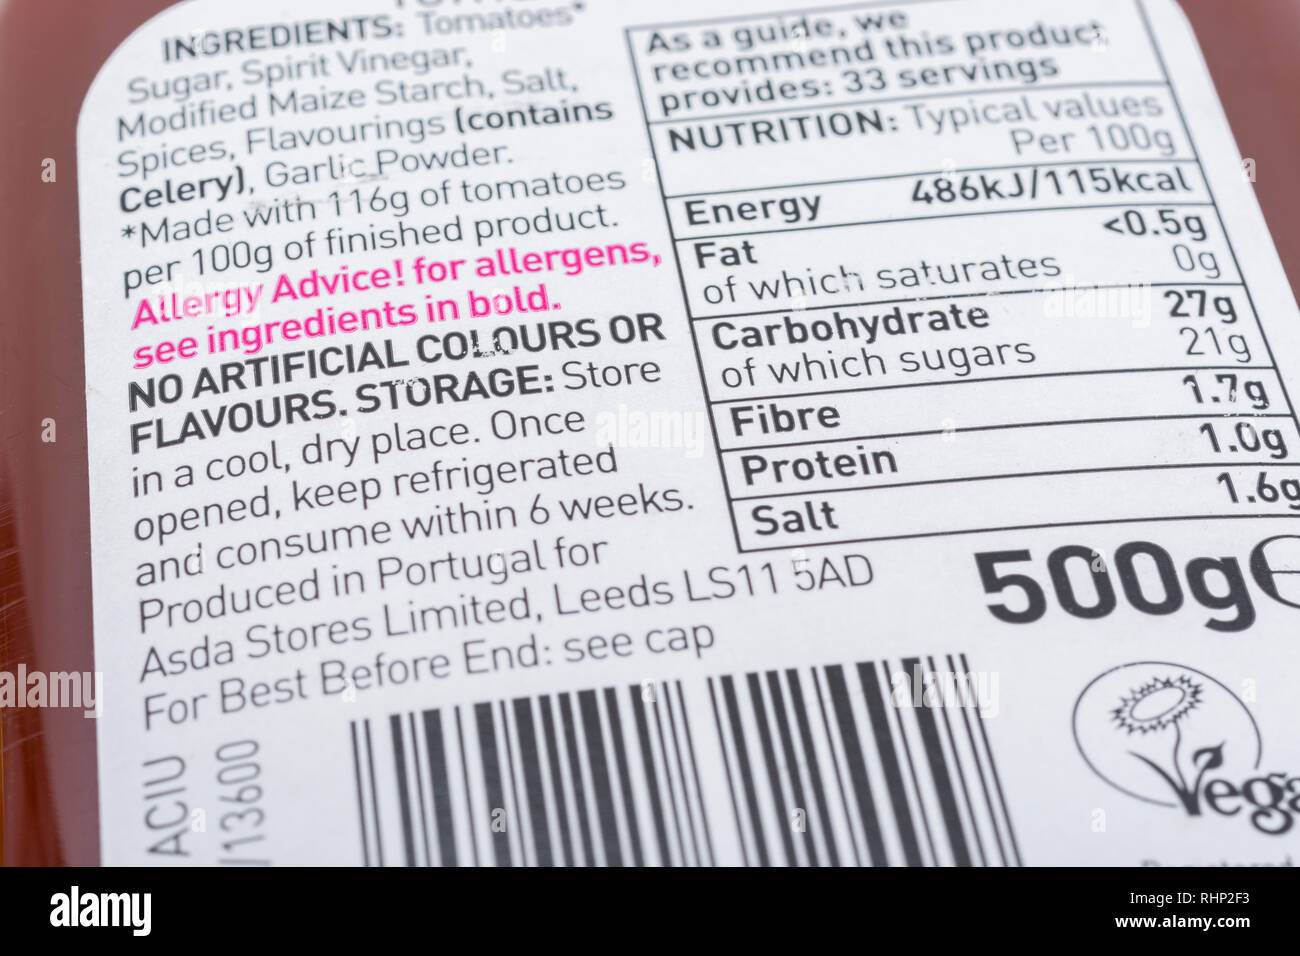 ASDA tomato sauce label stating no use of artificial colours or flavours. - Stock Image